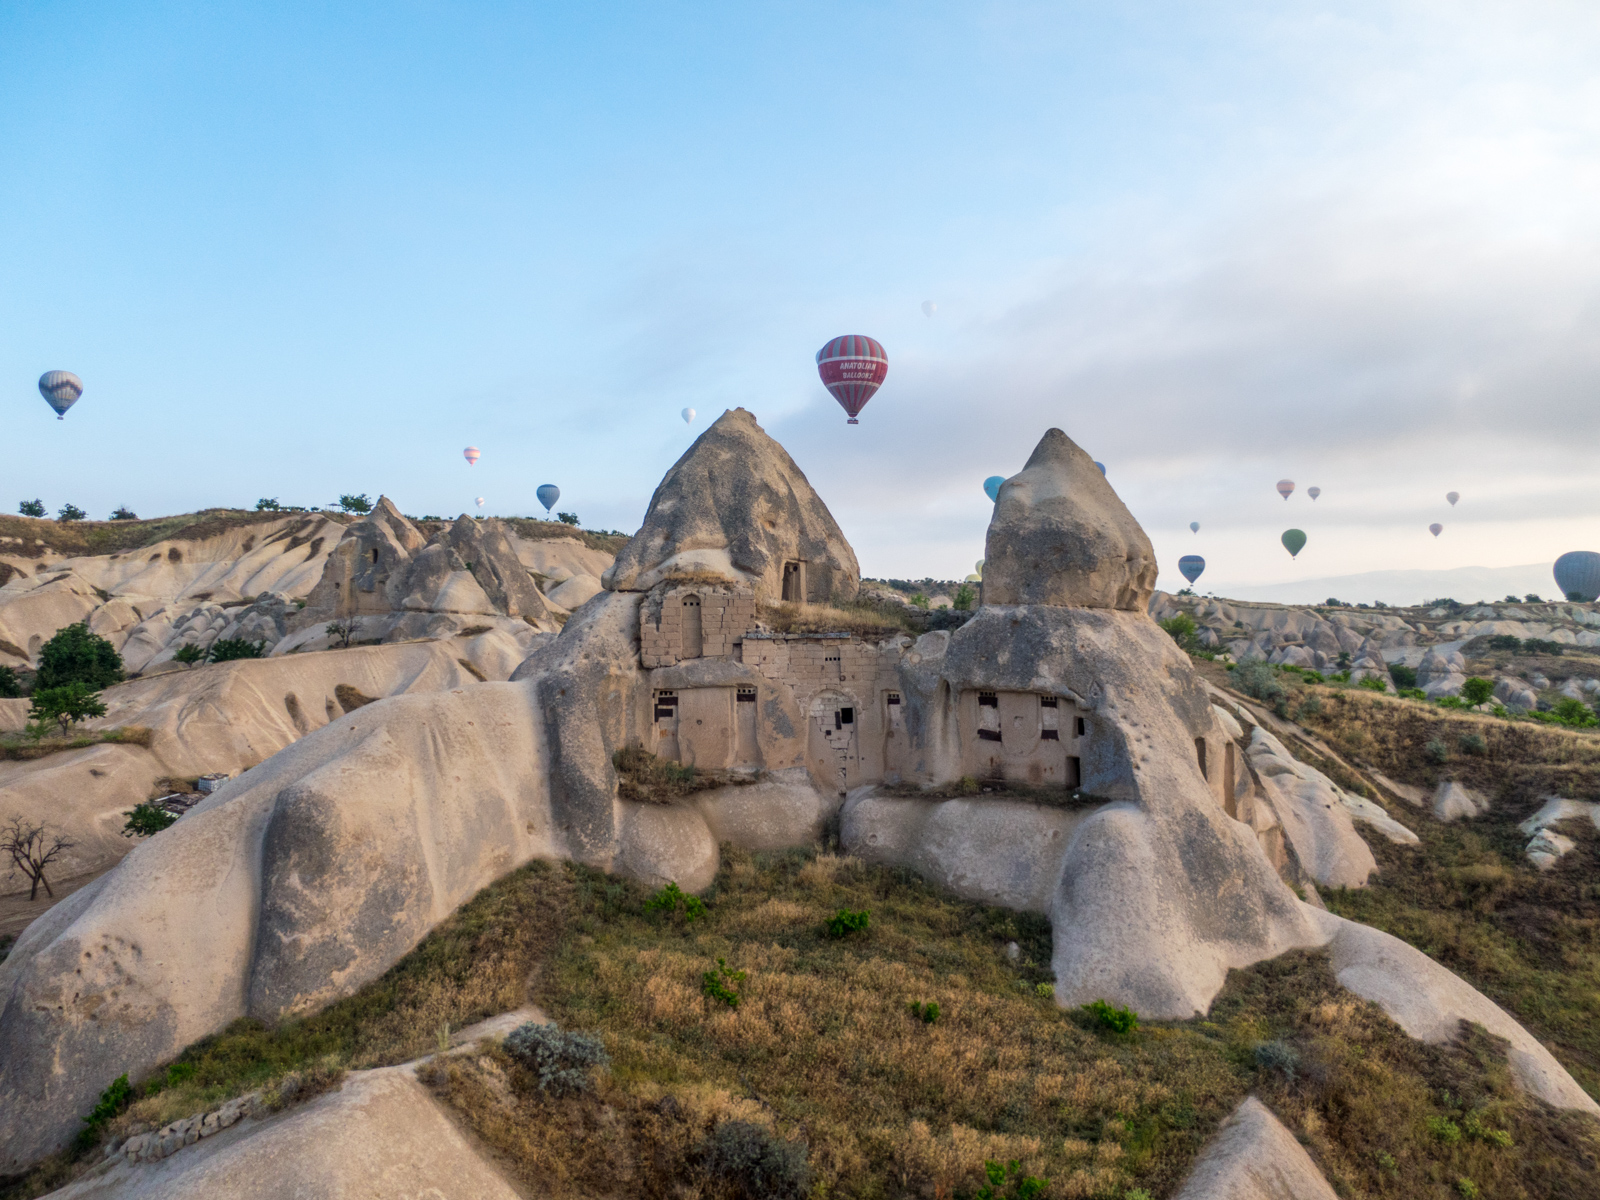 Rock caves and balloons